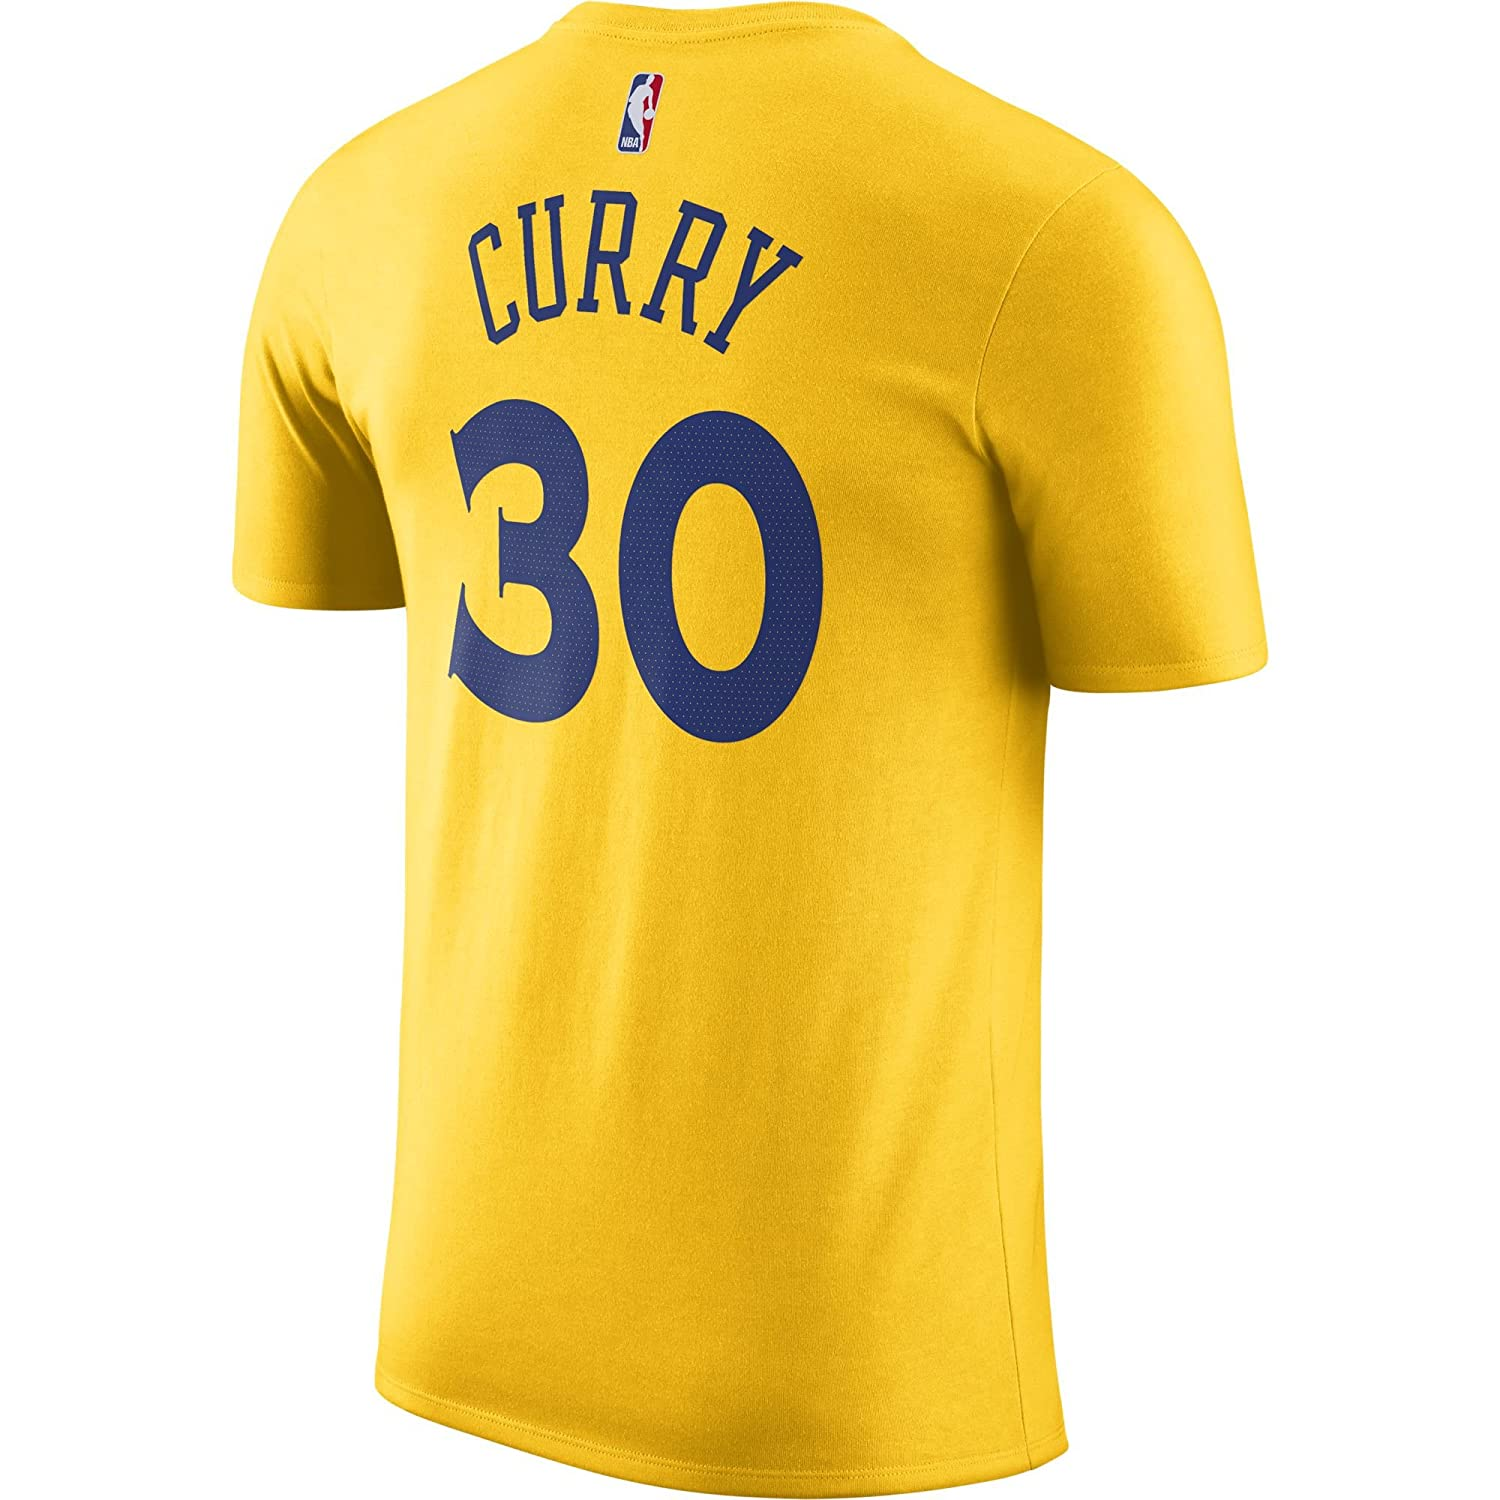 Nike NBA Golden State Warriors Stephen Curry 30 SC30 2017 2018 City Edition Official Name & Number, Camiseta de Hombre: Amazon.es: Ropa y accesorios